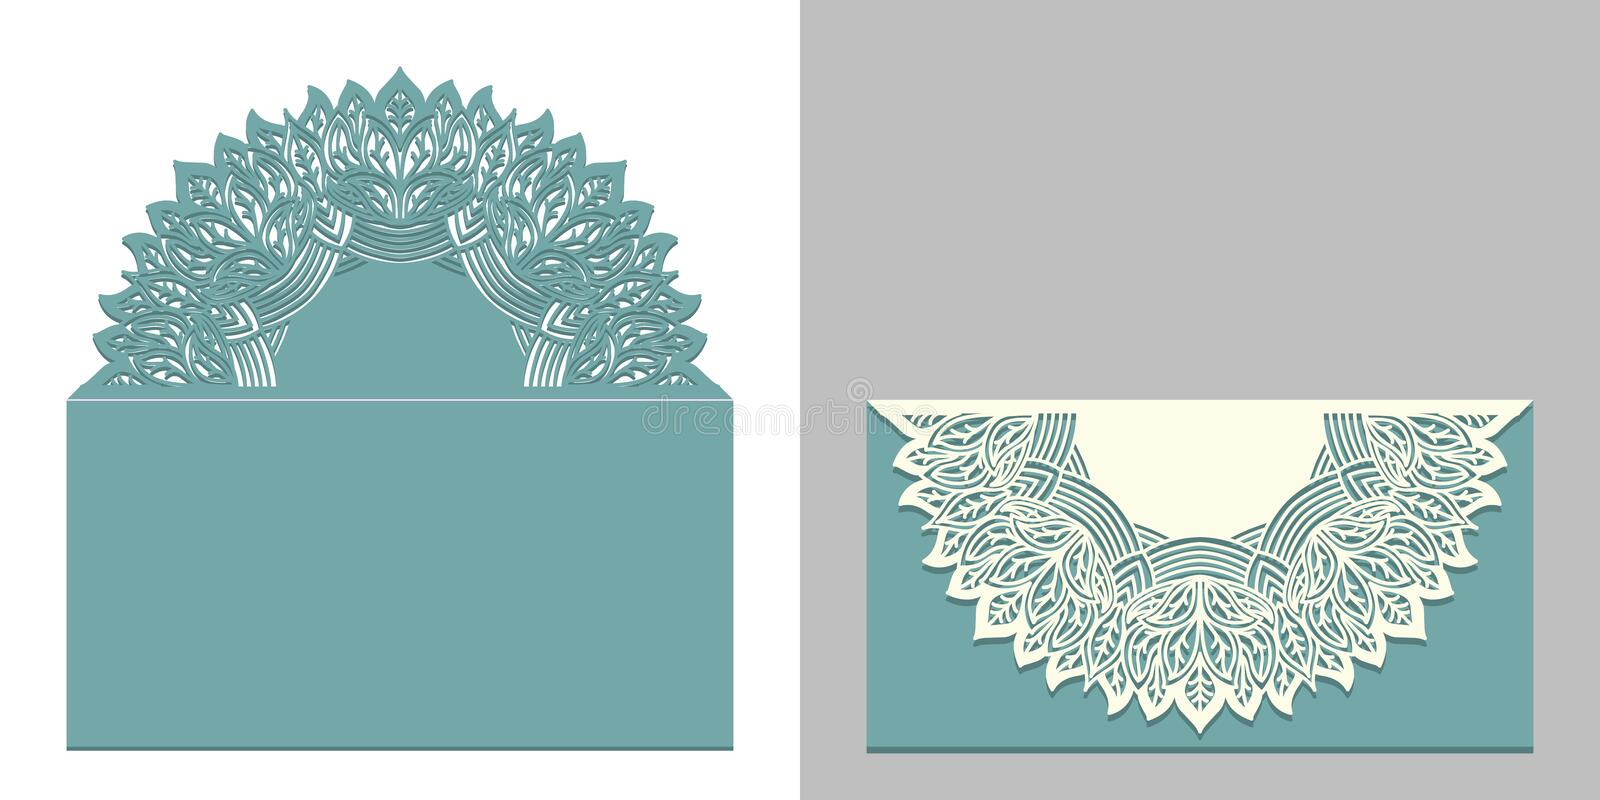 Laser cut paper lace envelope with mandala element. Cutting template for wedding invitation or card designs. vector illustration